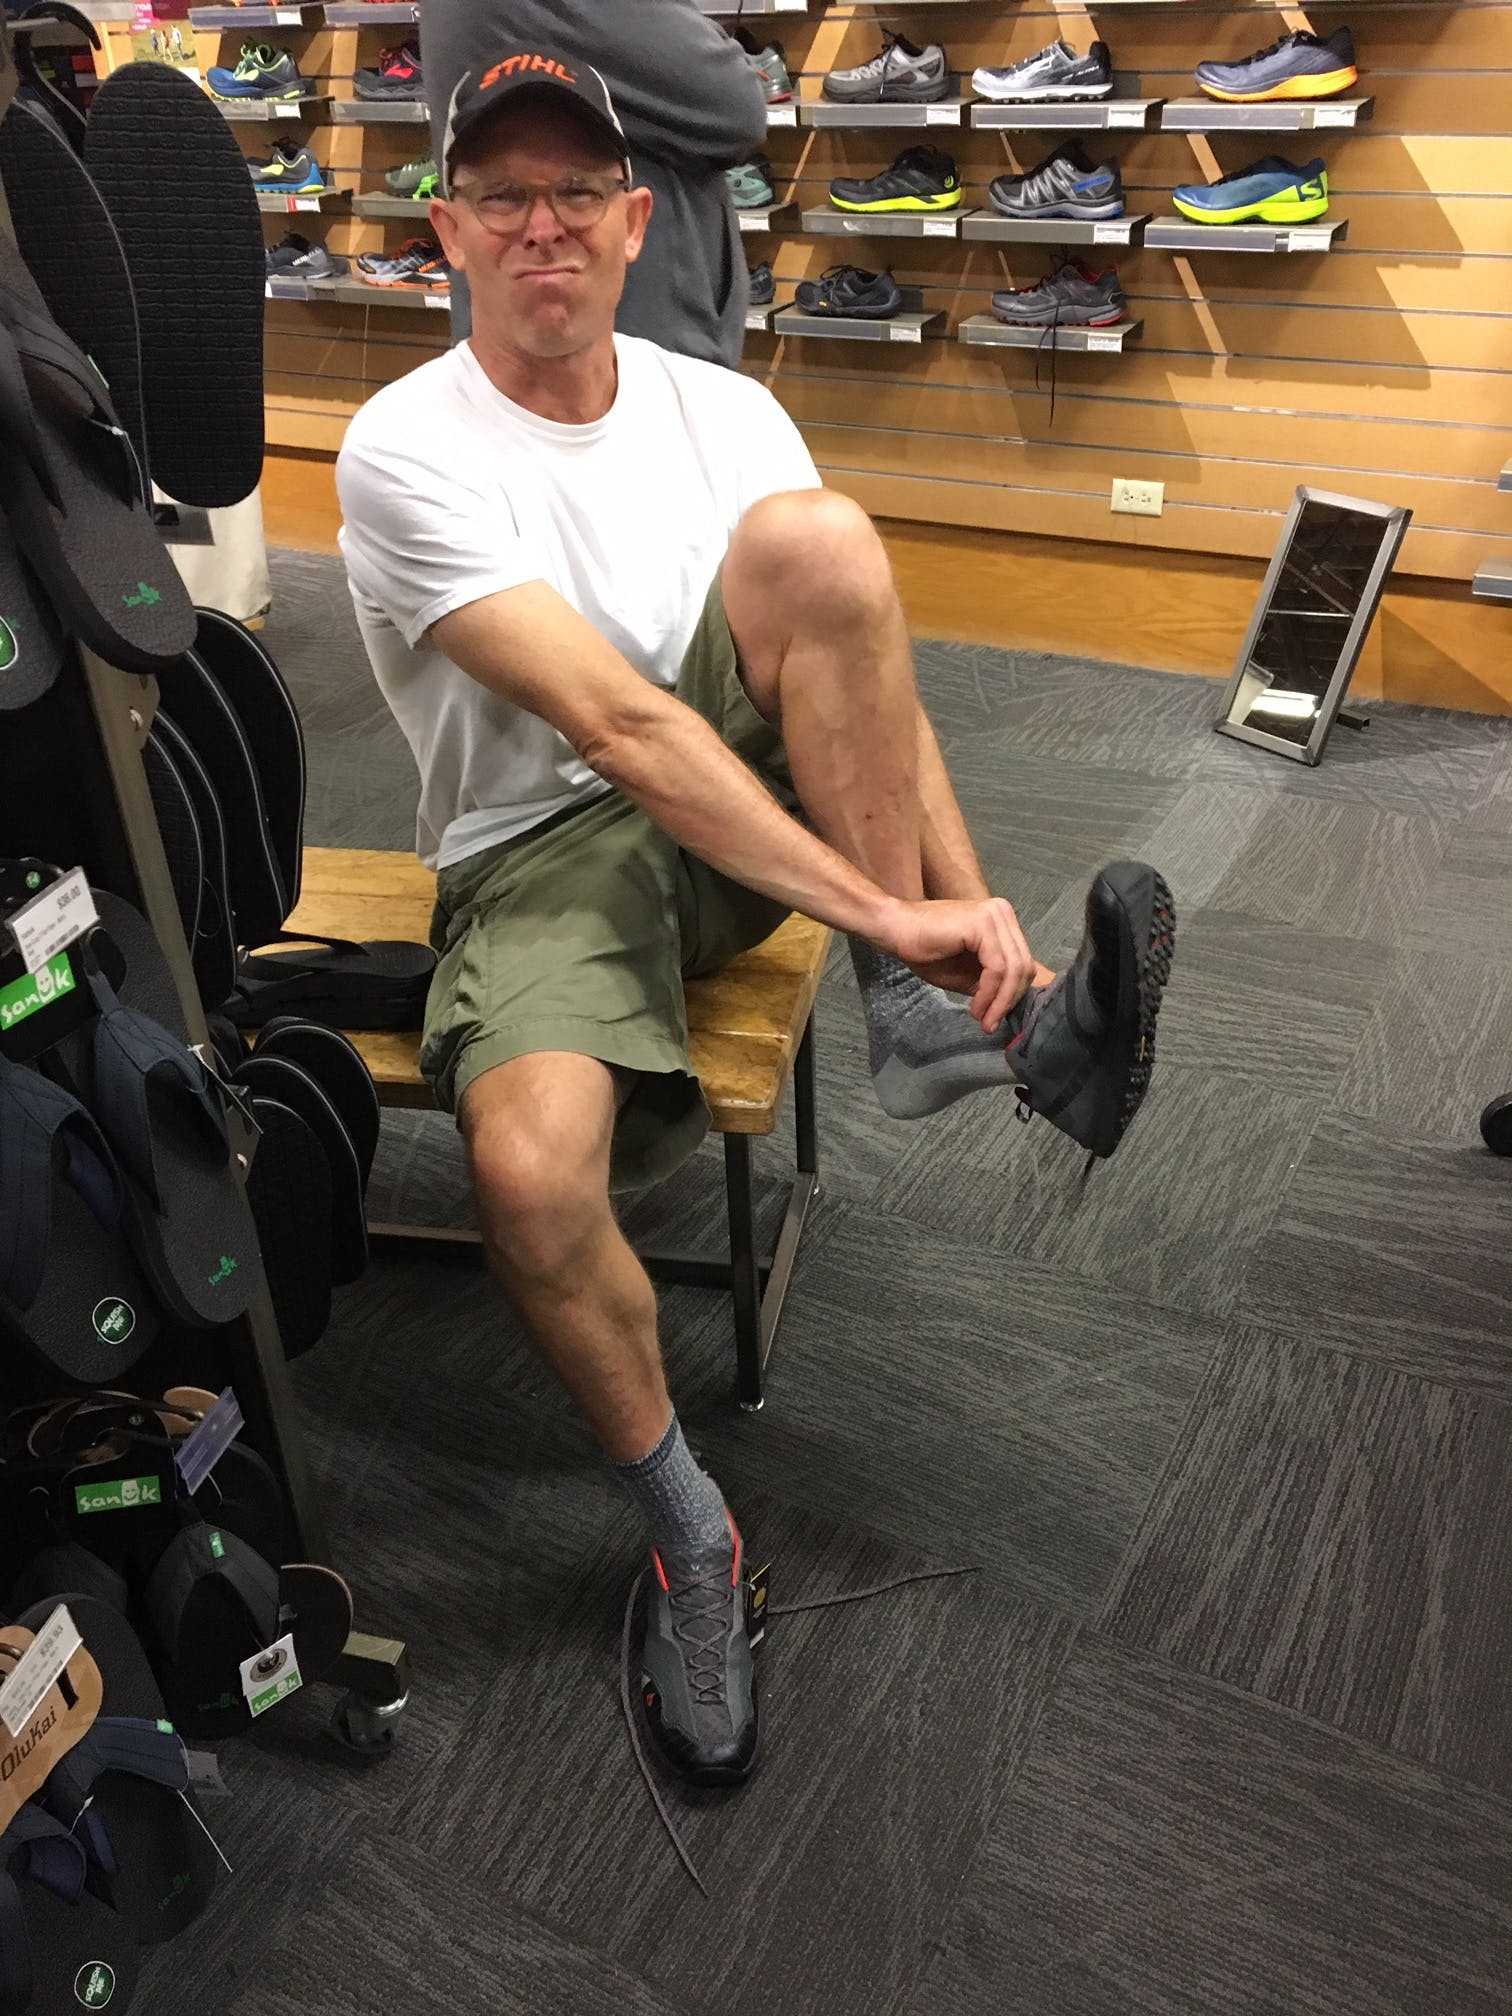 trying on shoes at REI